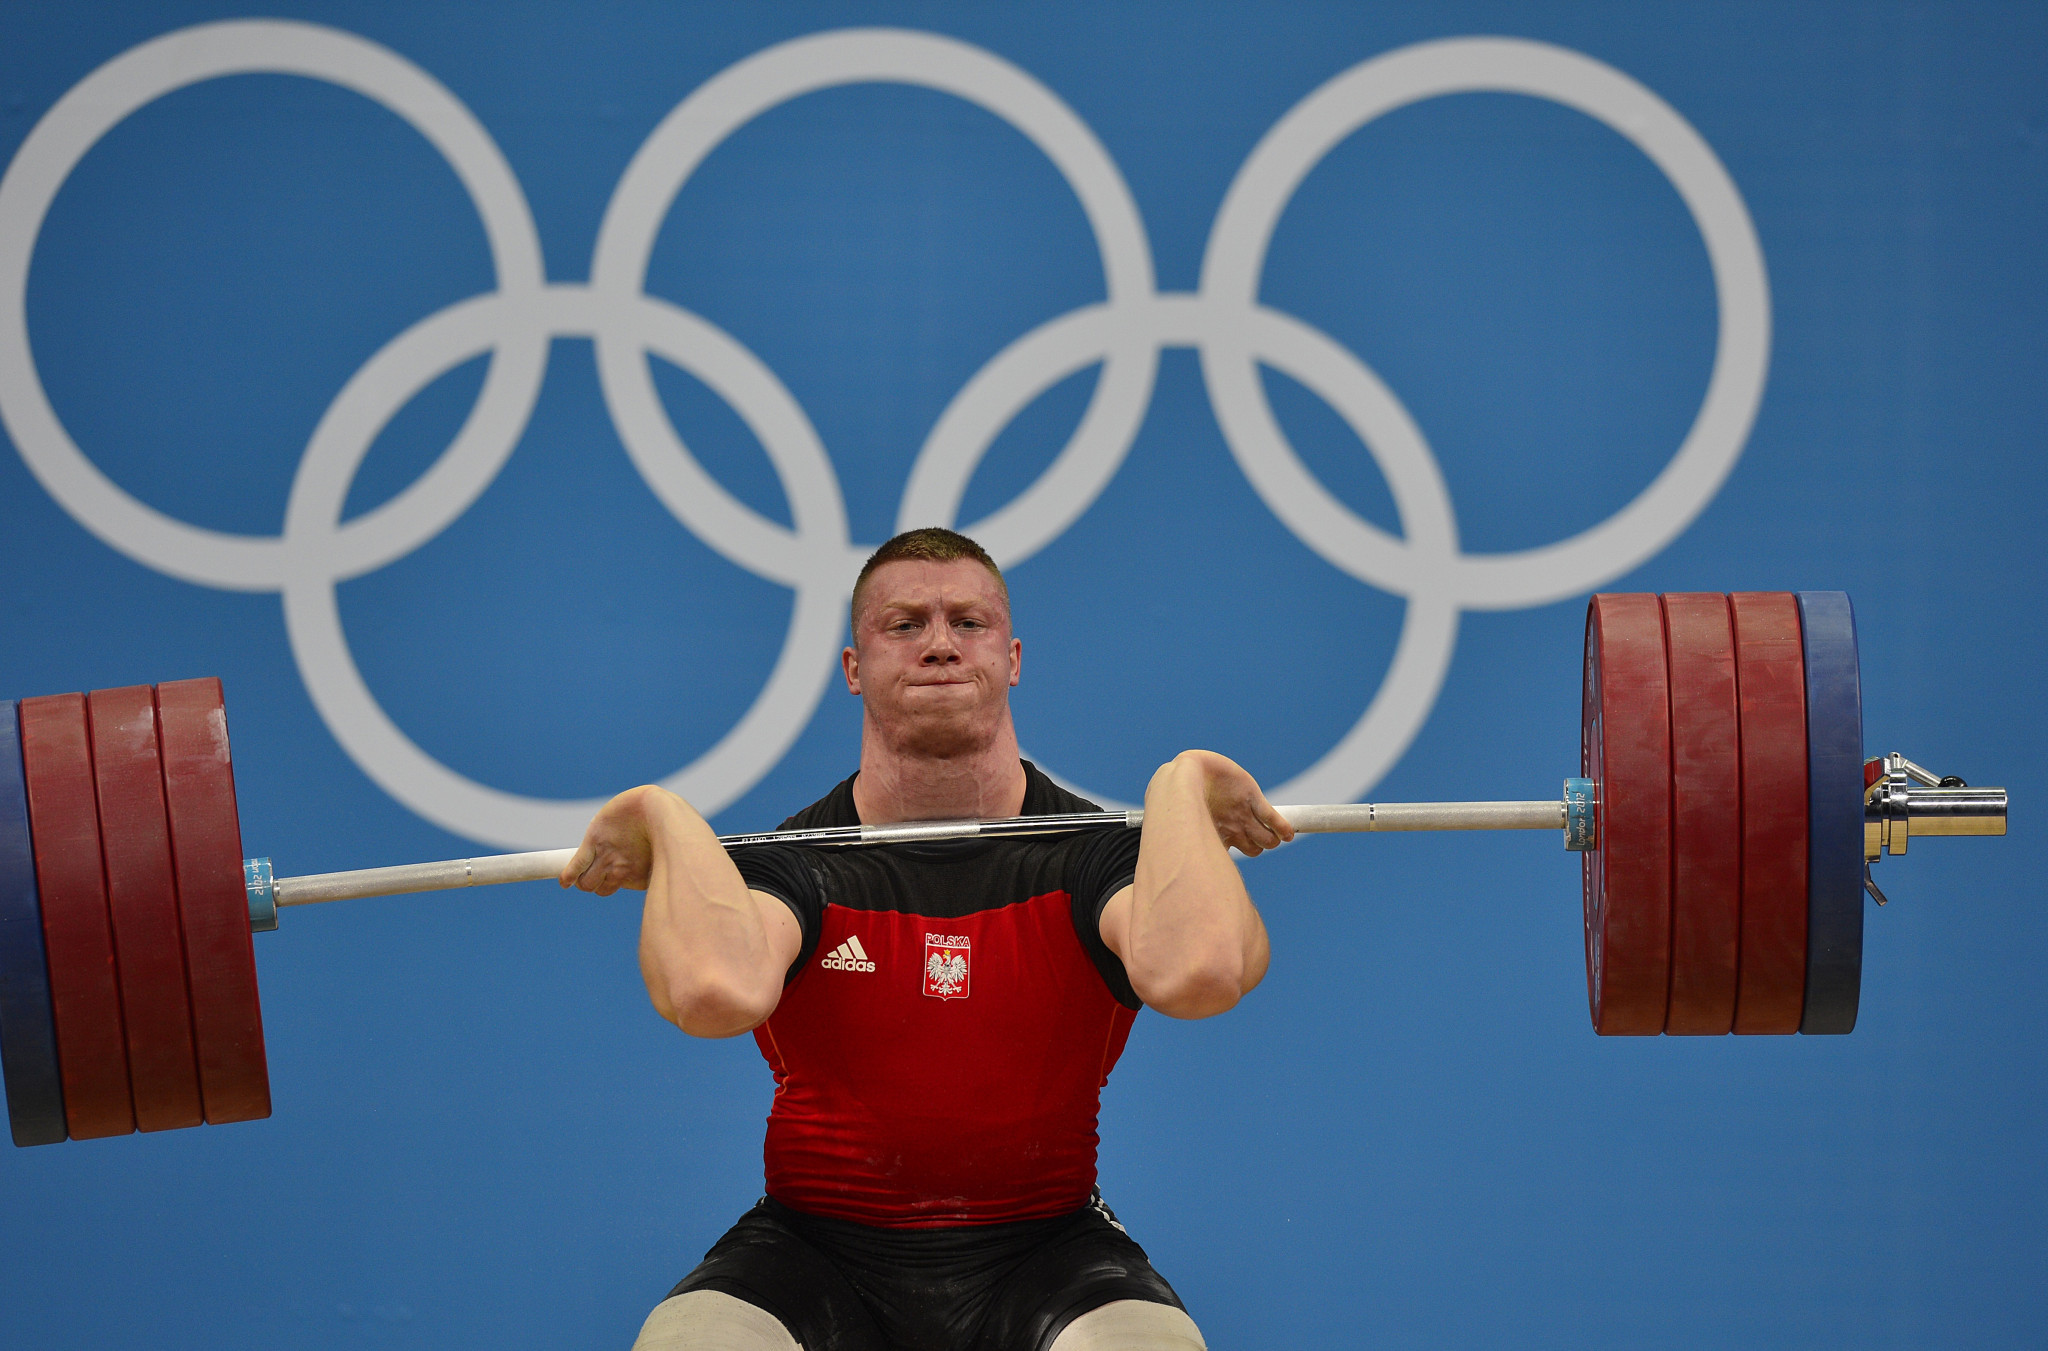 Polish weightlifter fails in CAS appeal against four-year doping ban